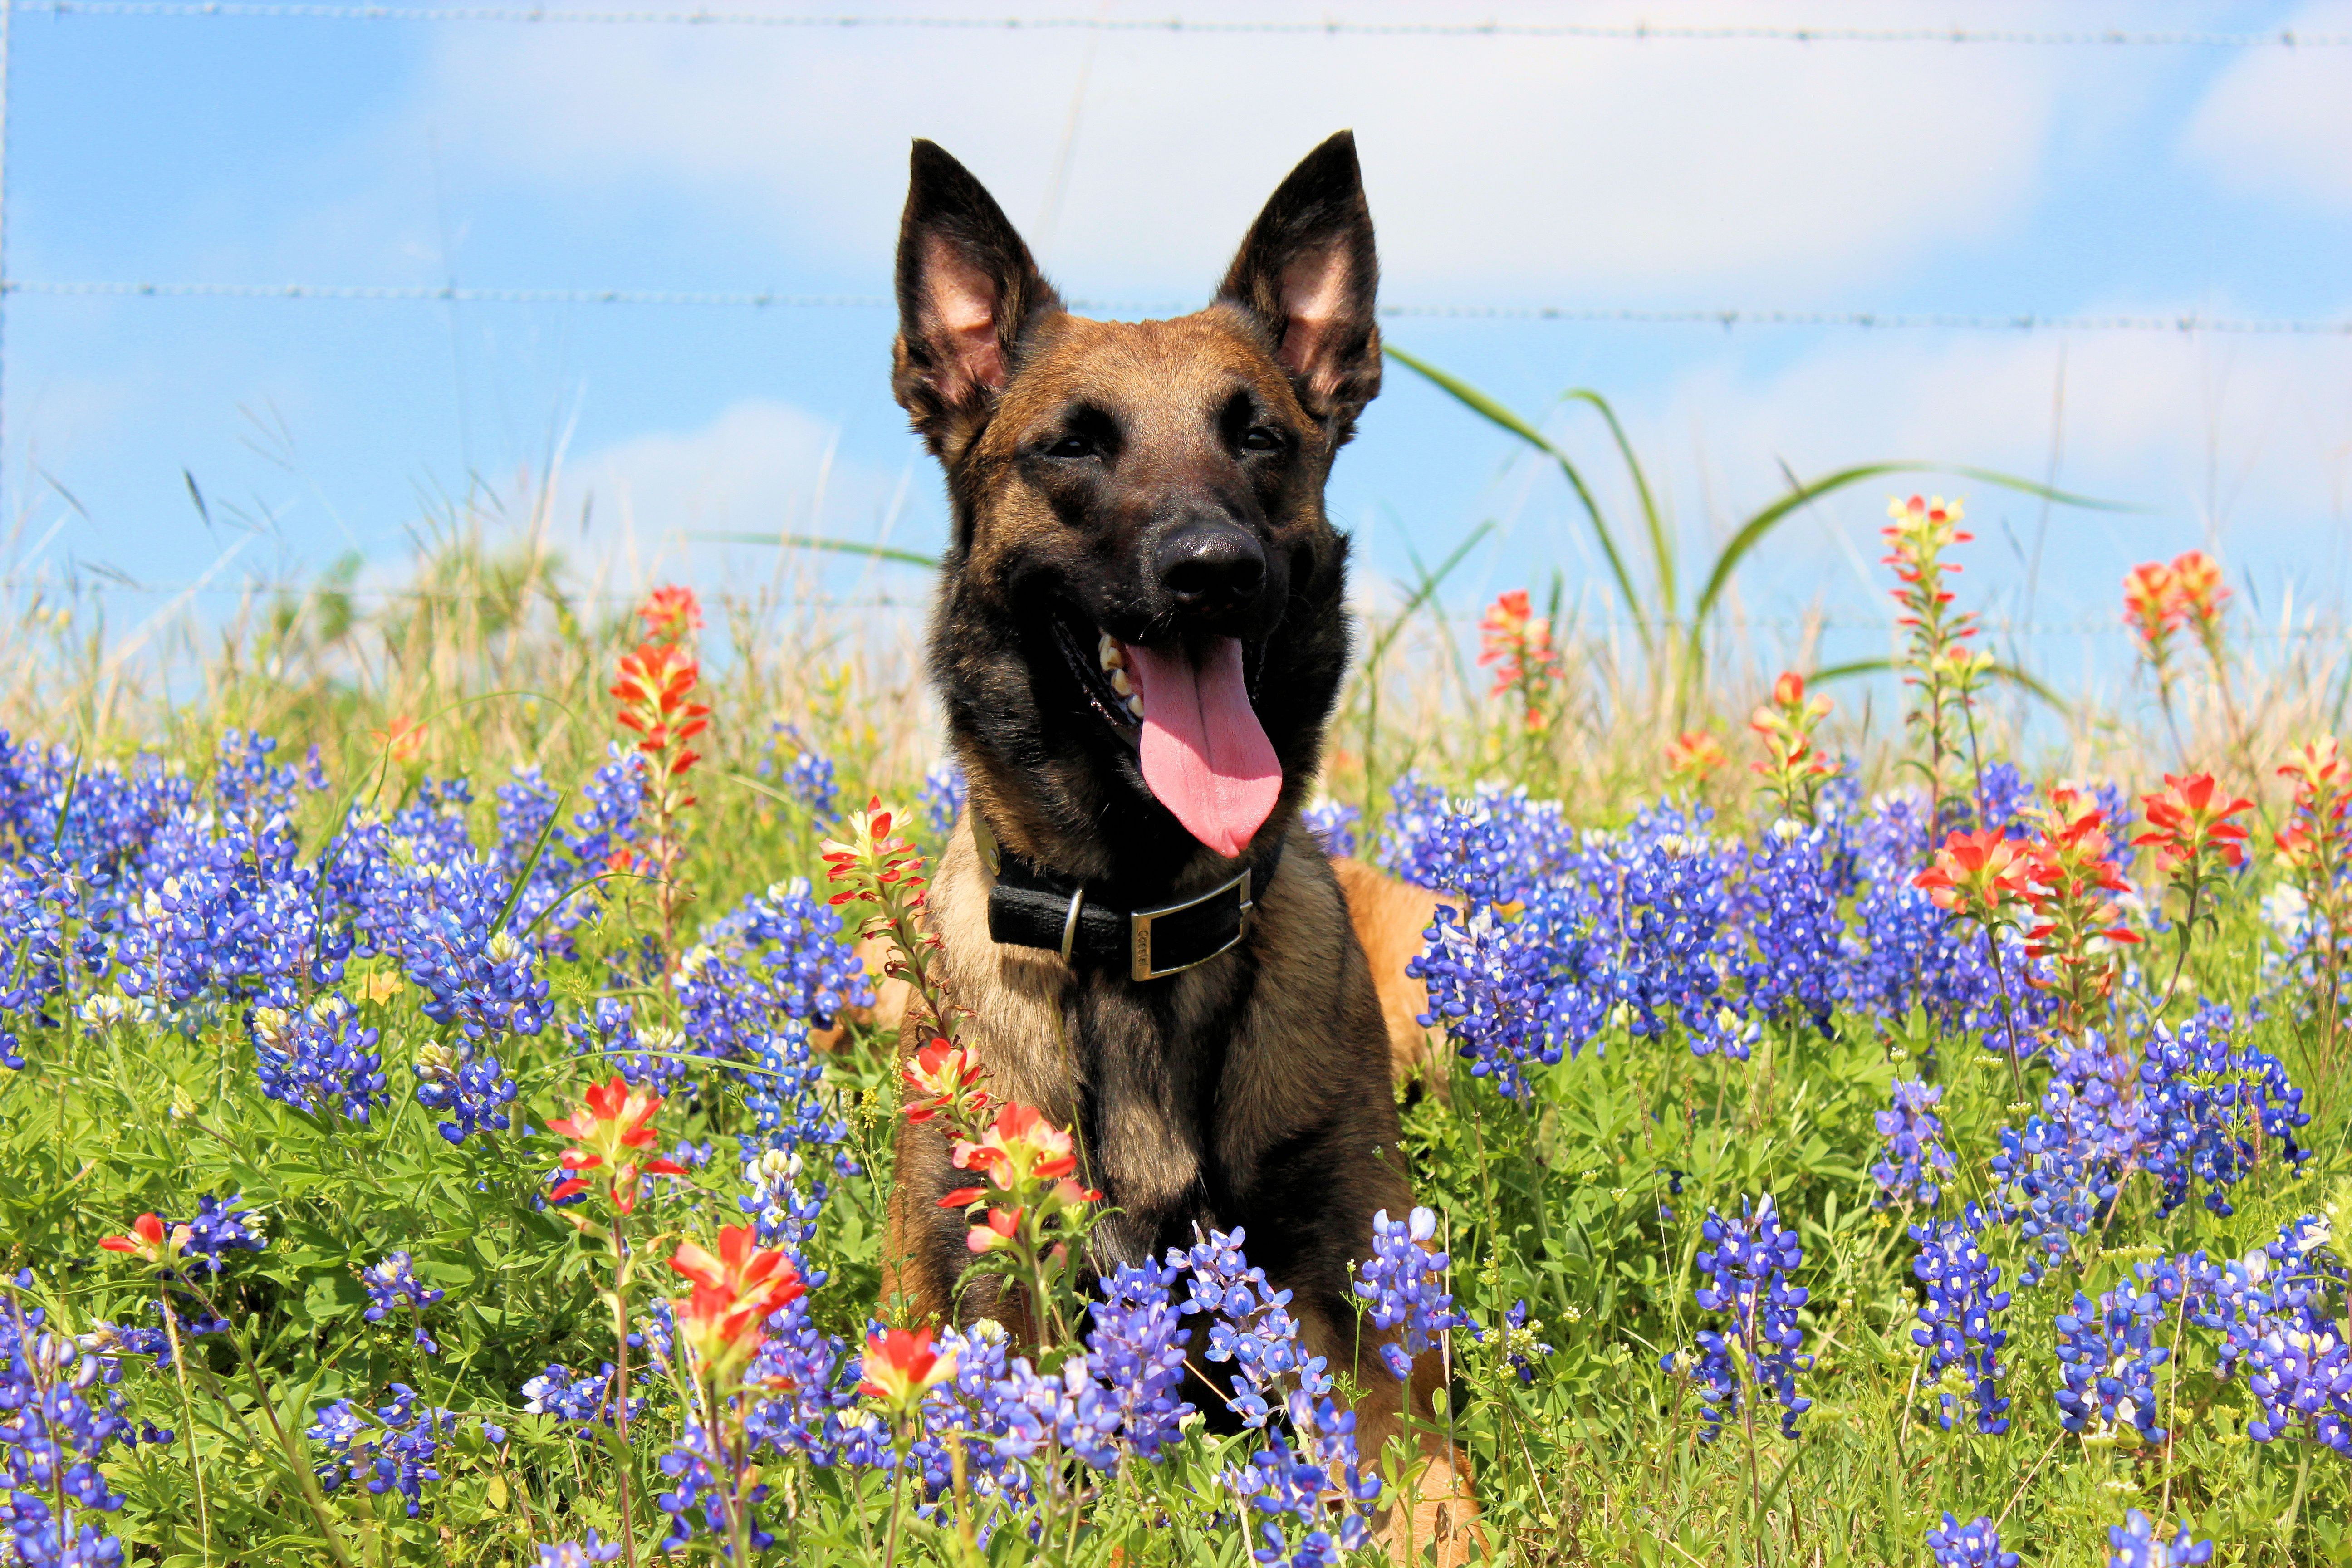 Sacha, a Belgian Malinois, in the Texas